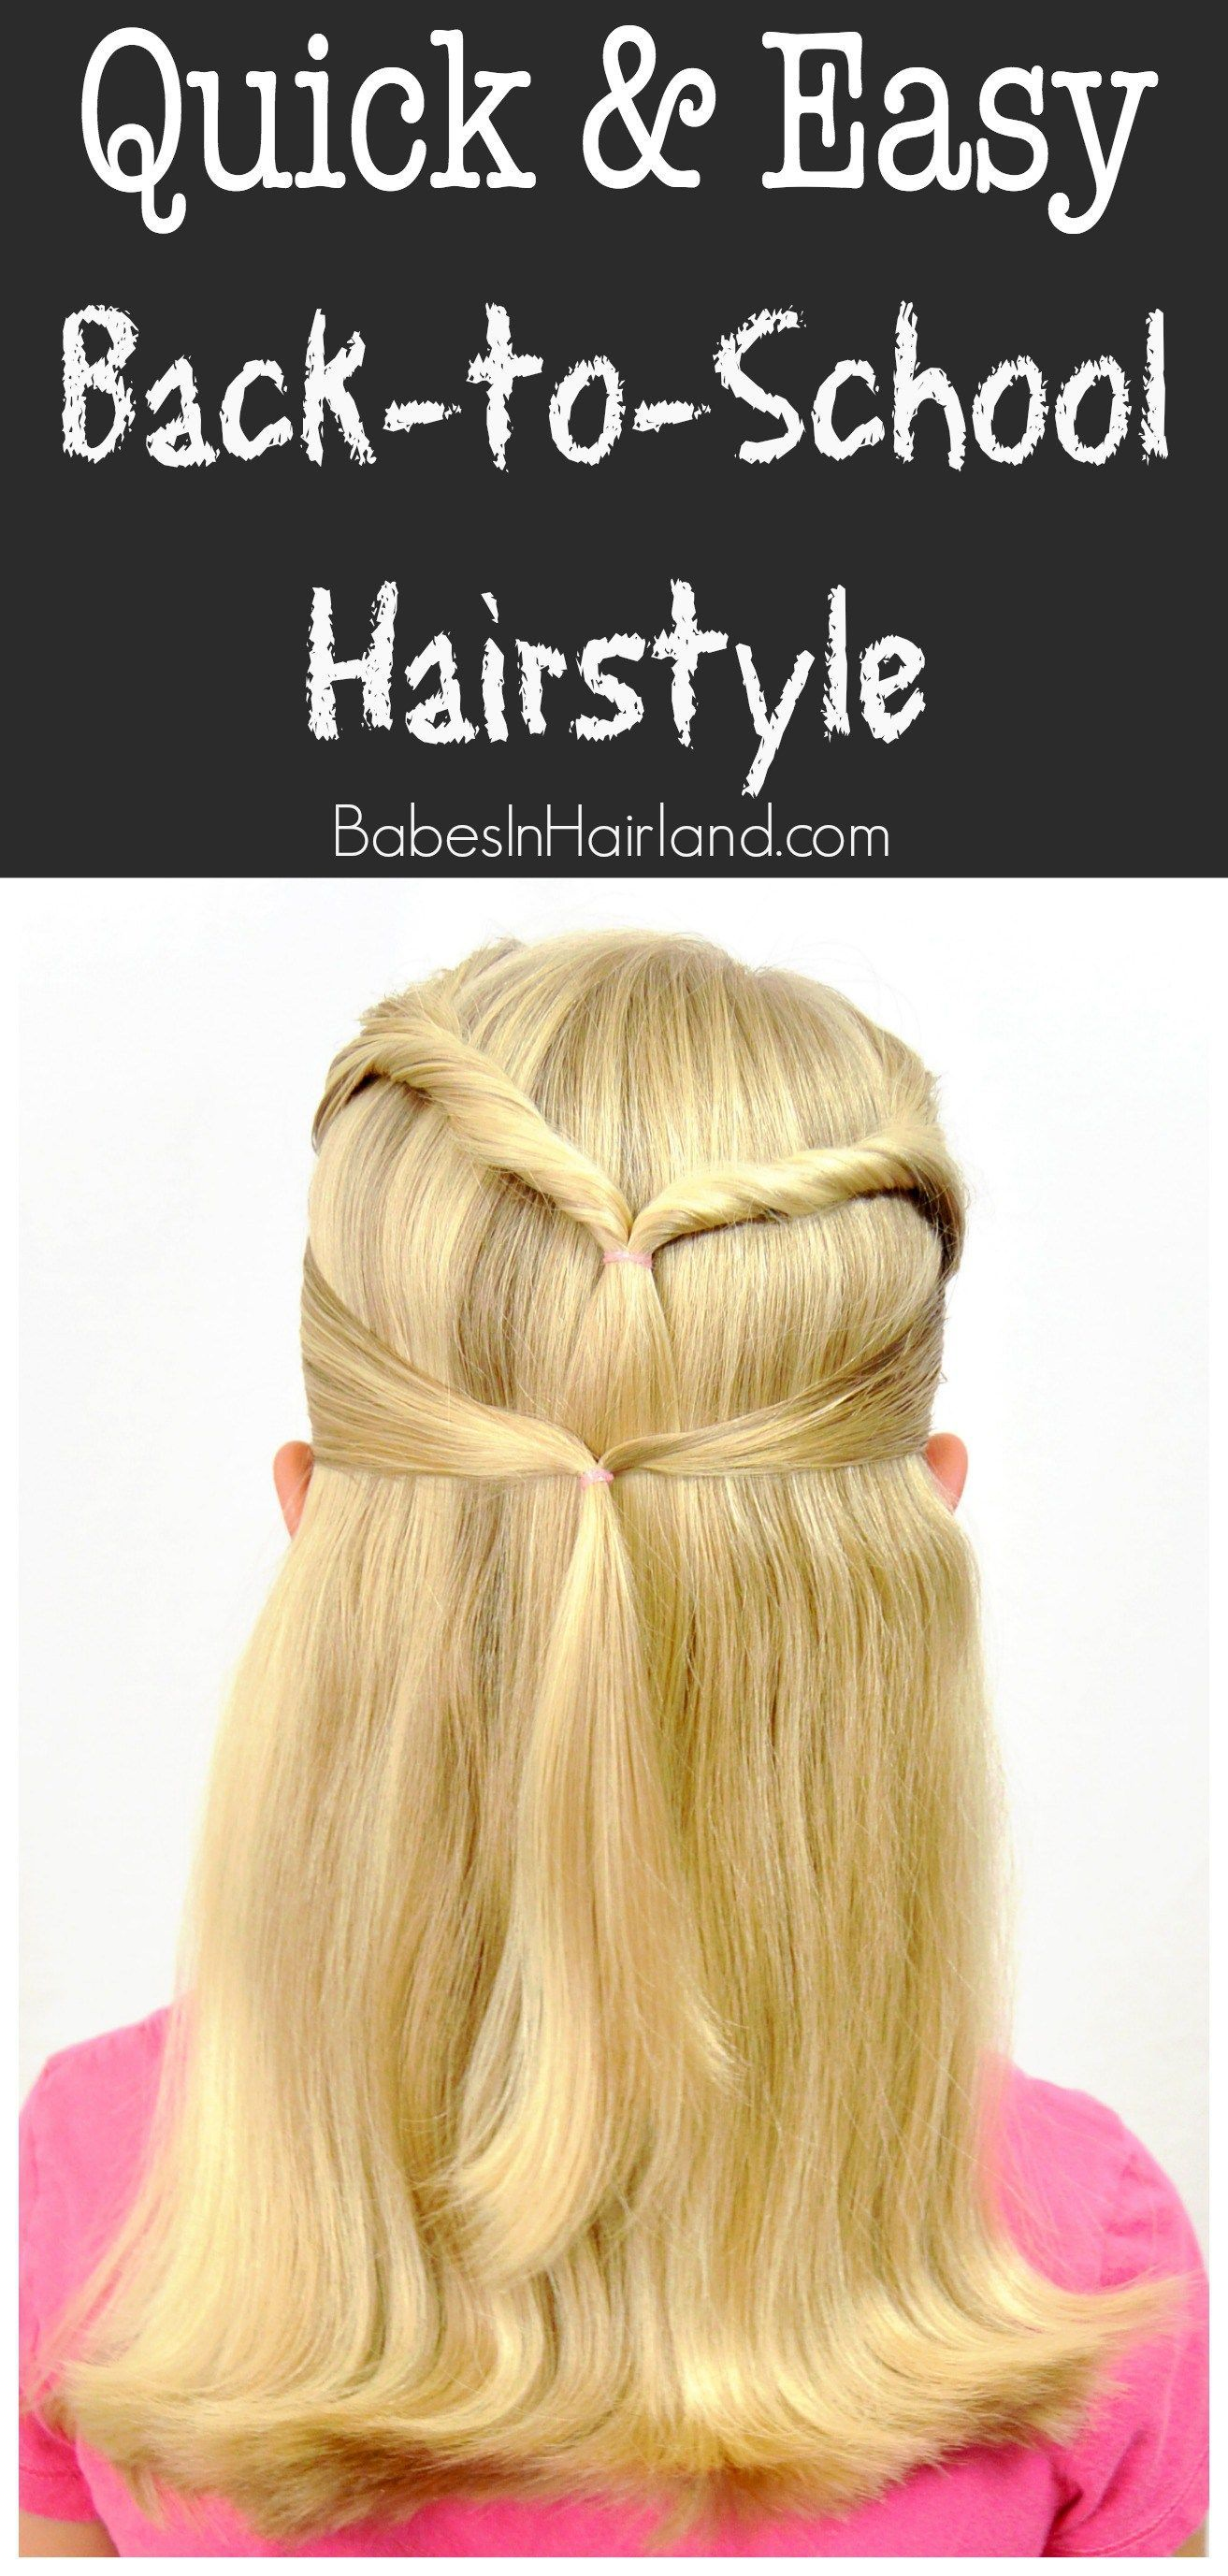 Quick u easy backtoschool hairstyle from babesinhairland